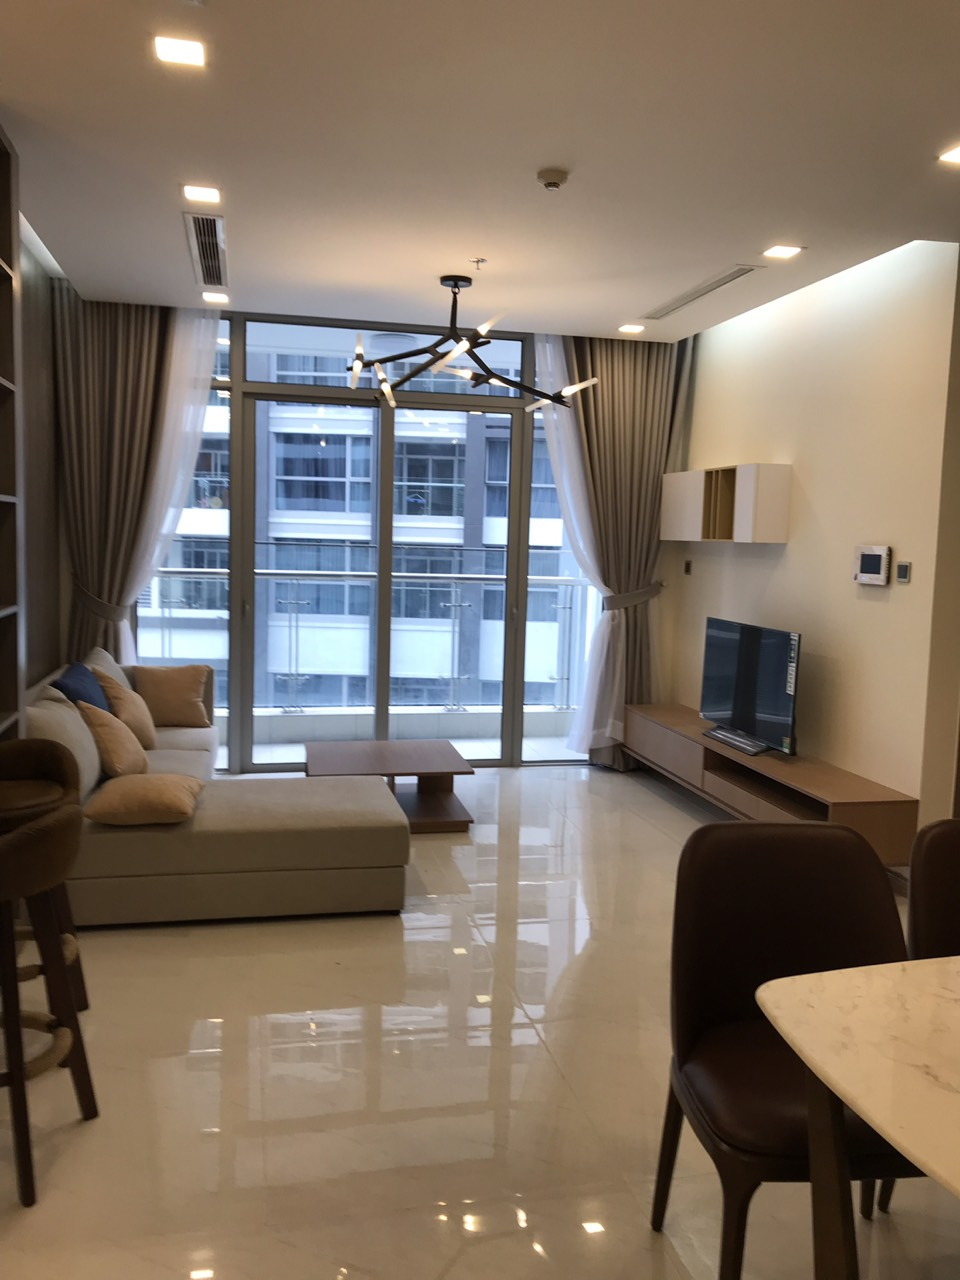 2 bedrooms apartment for rent in vinhomes central park for One and two bedroom apartments